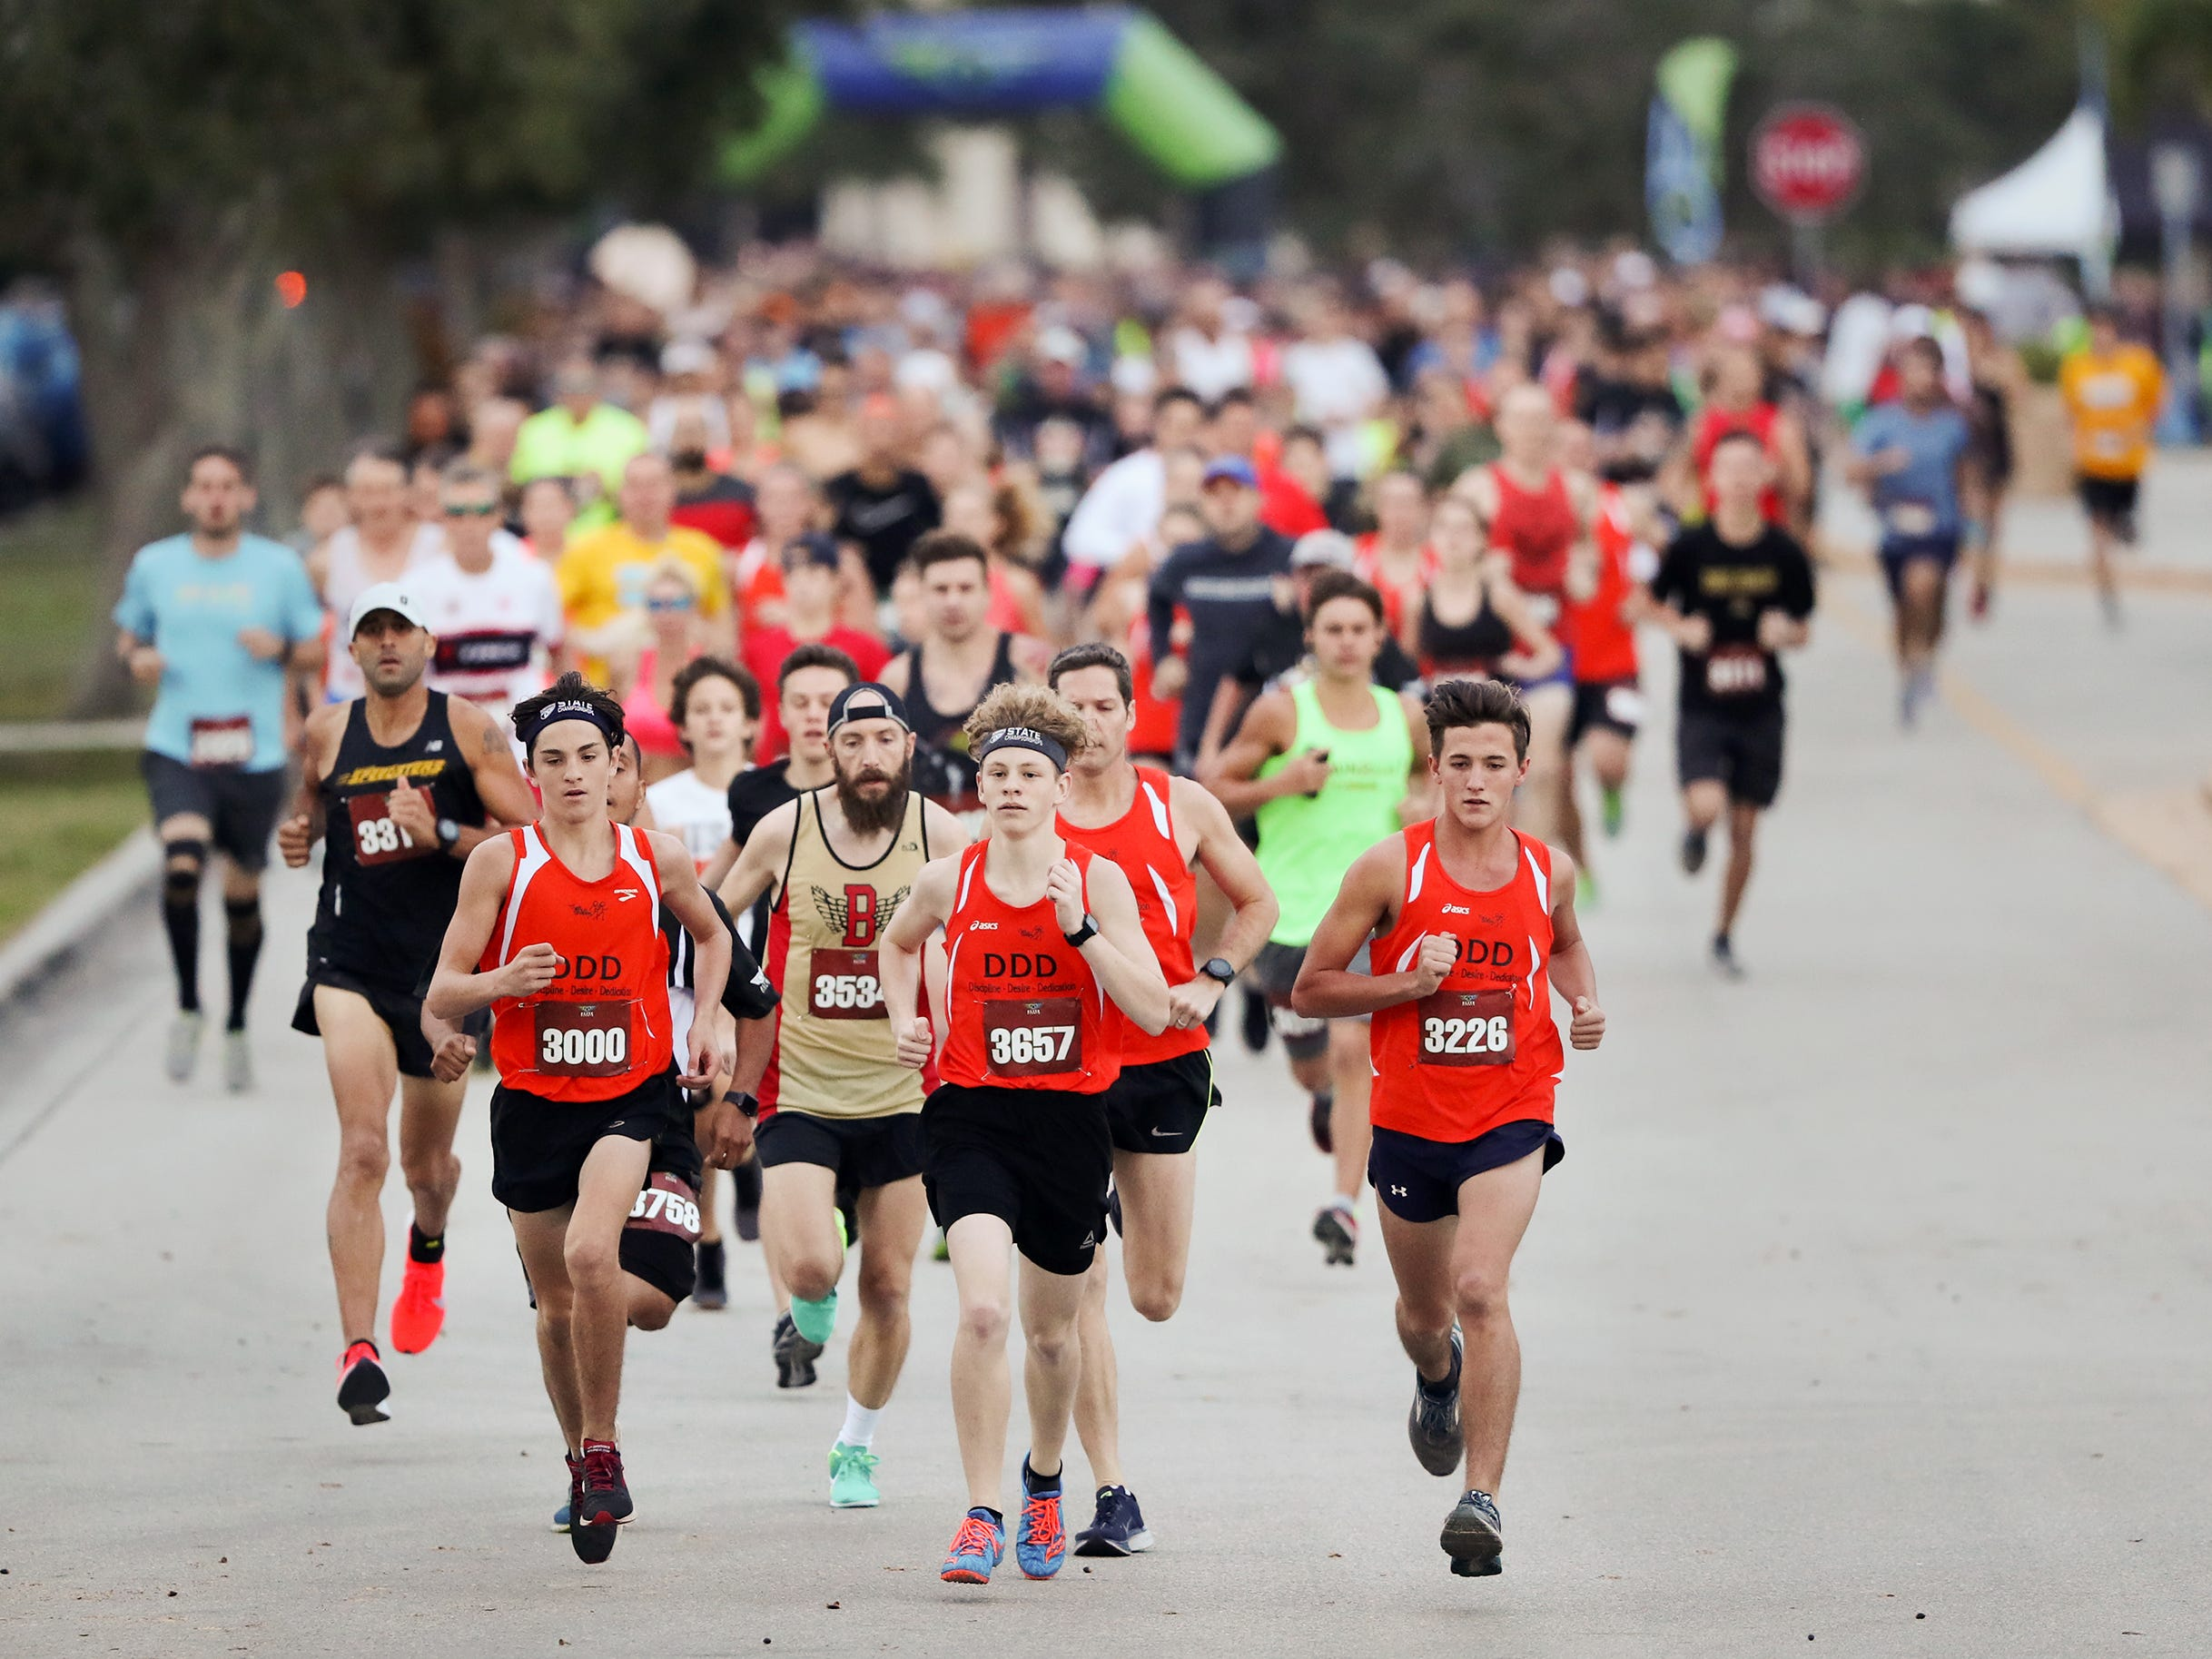 More than 1,000 runners and walkers took part recently in the Elite Events Thanksgiving Day 5k at Hertz Arena in Estero, Florida. A portion of the proceeds benefit San Carlos Park Roller Hockey.